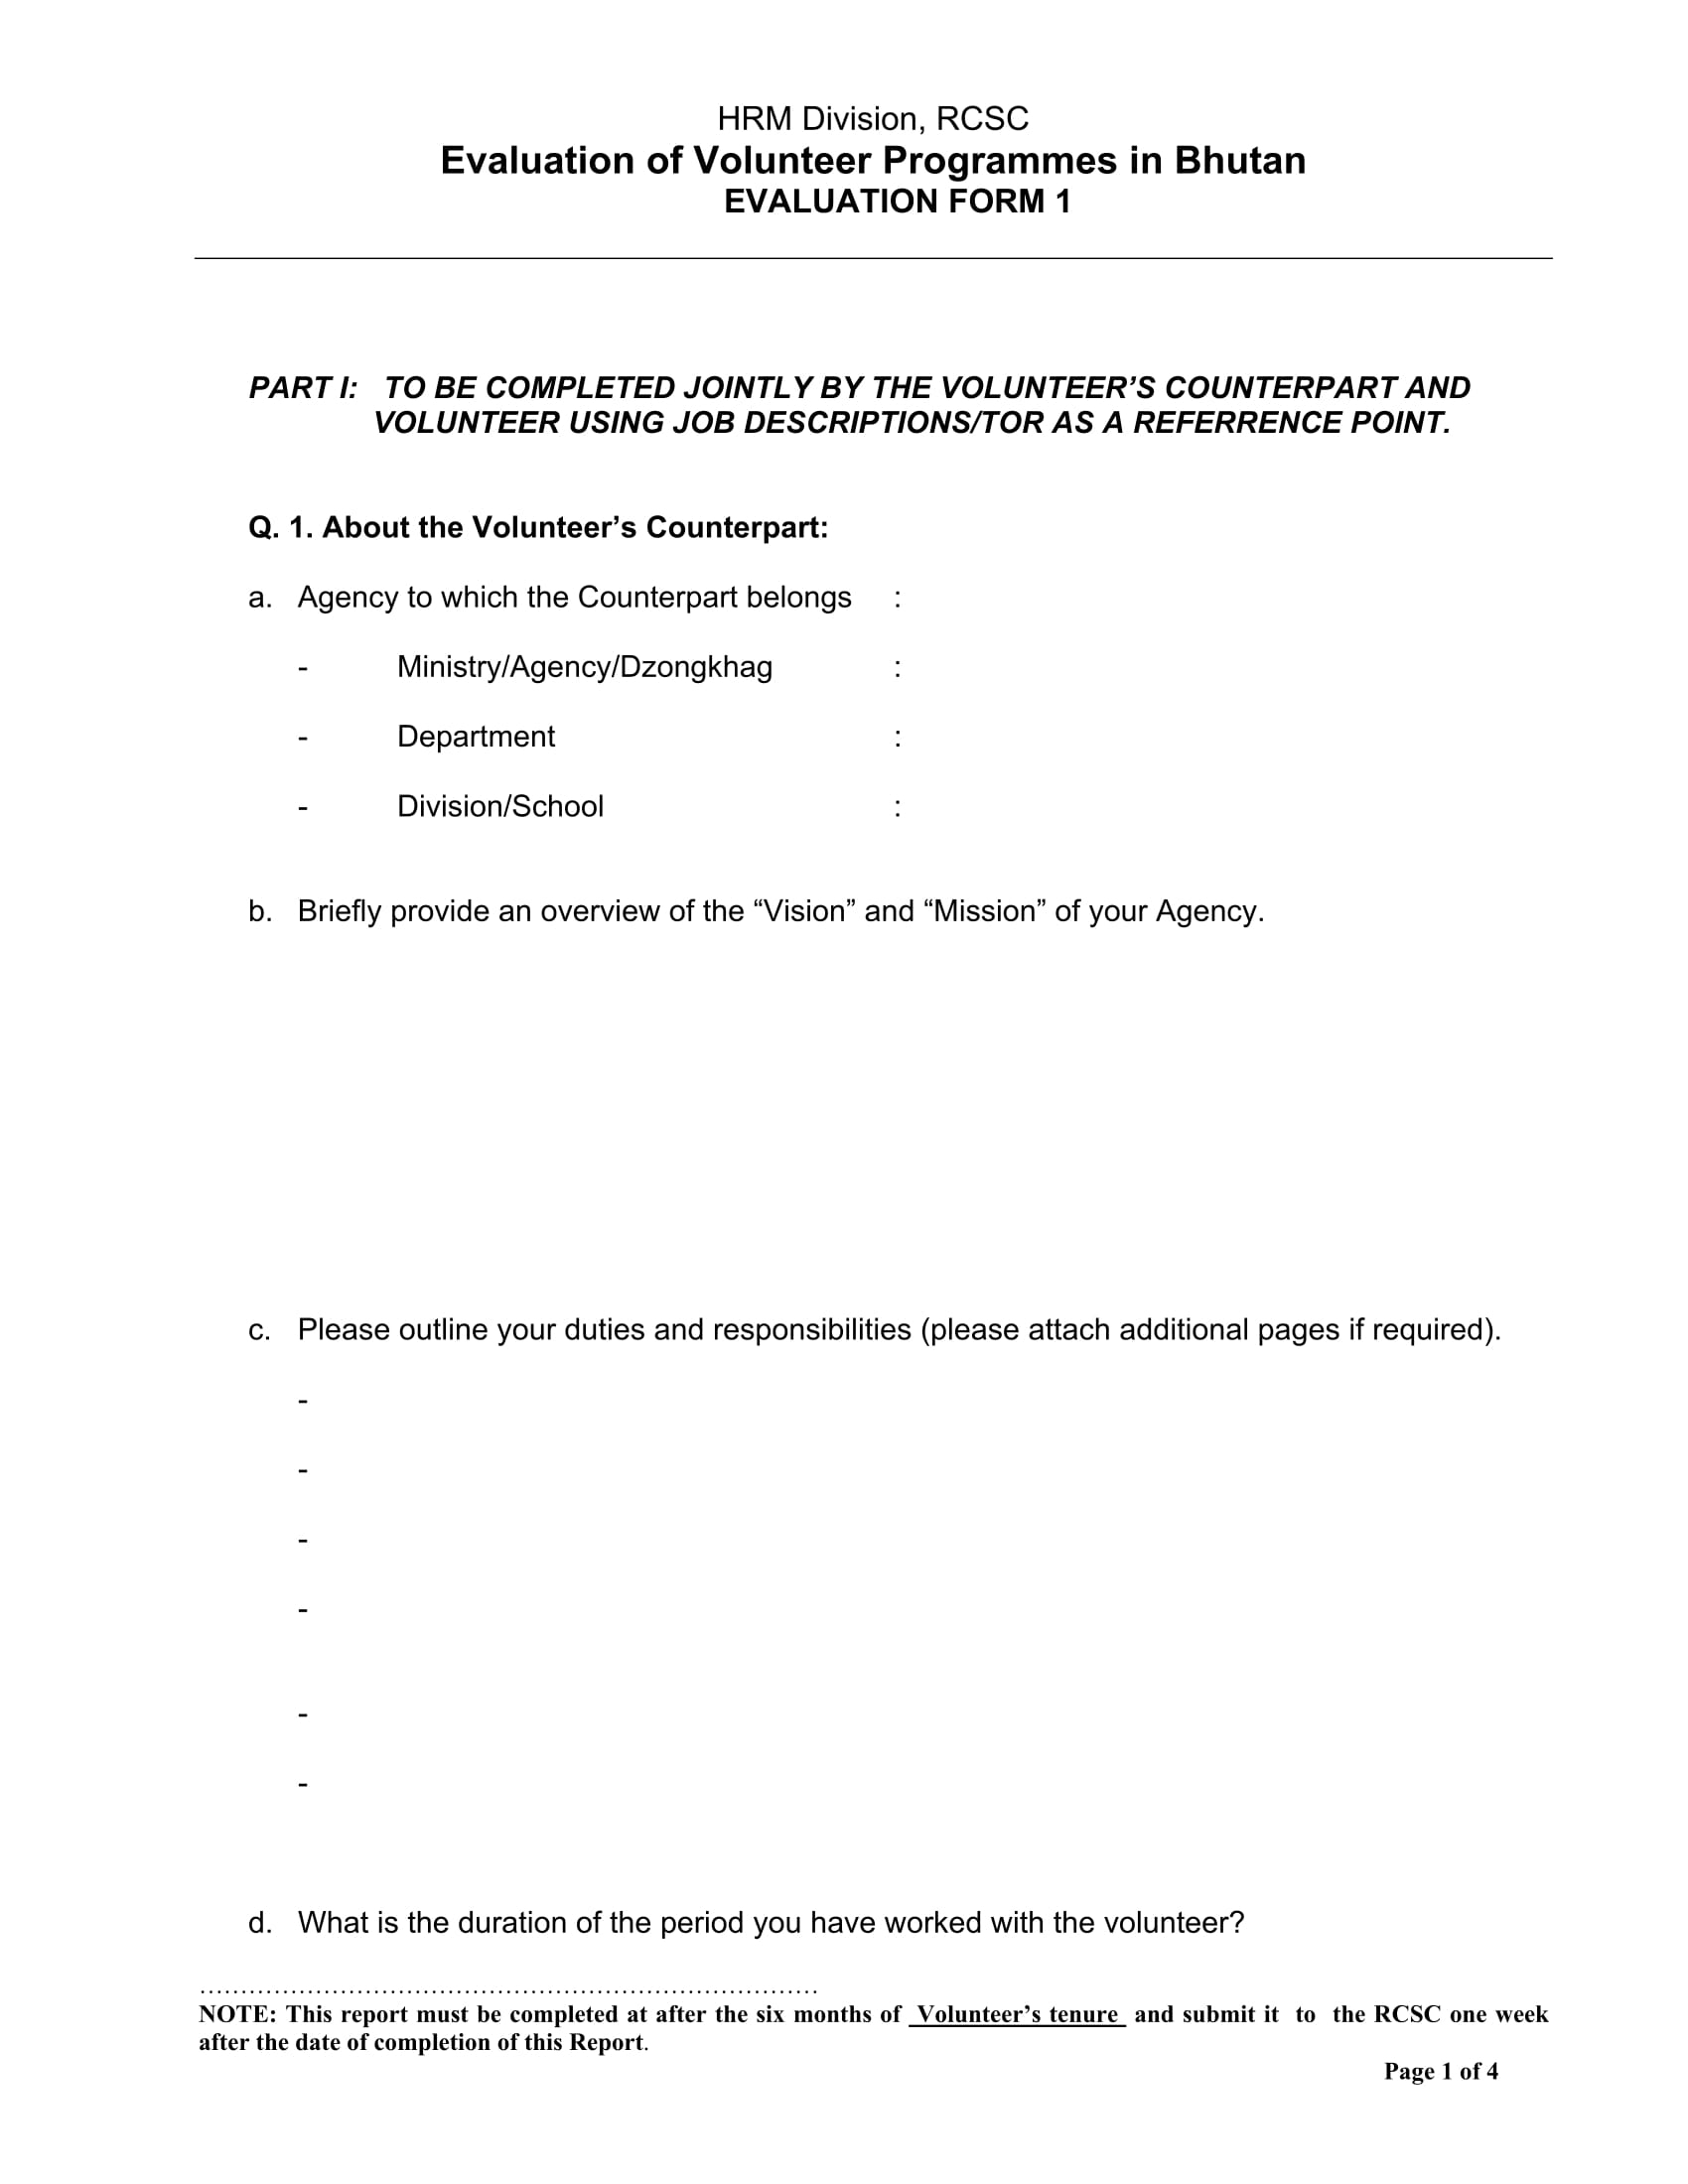 volunteer program evaluation form 1